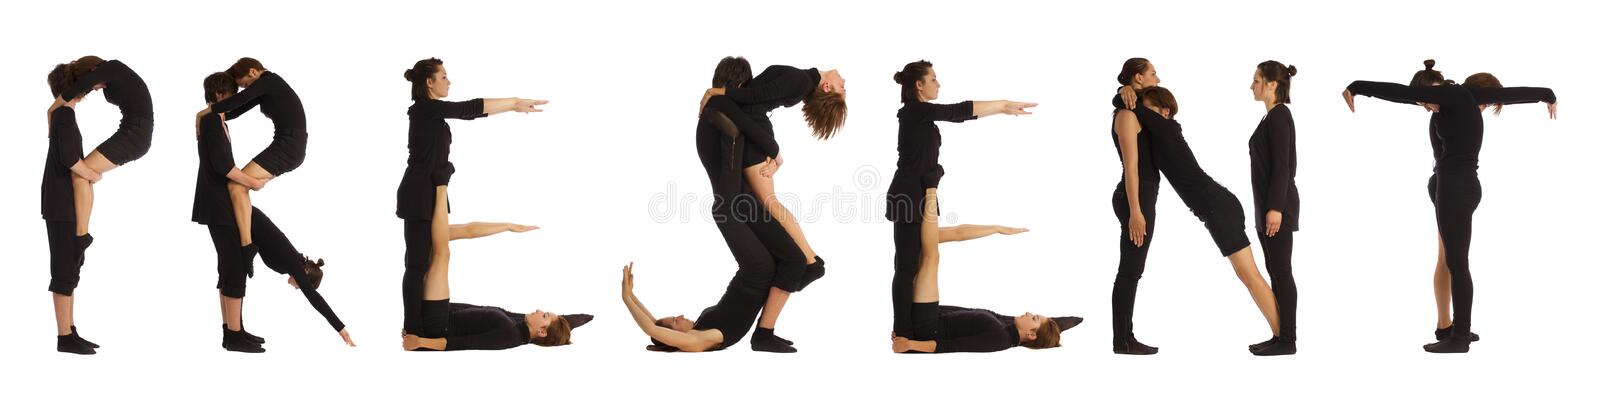 Black dressed people forming PRESENT word. Over white background royalty free stock photo